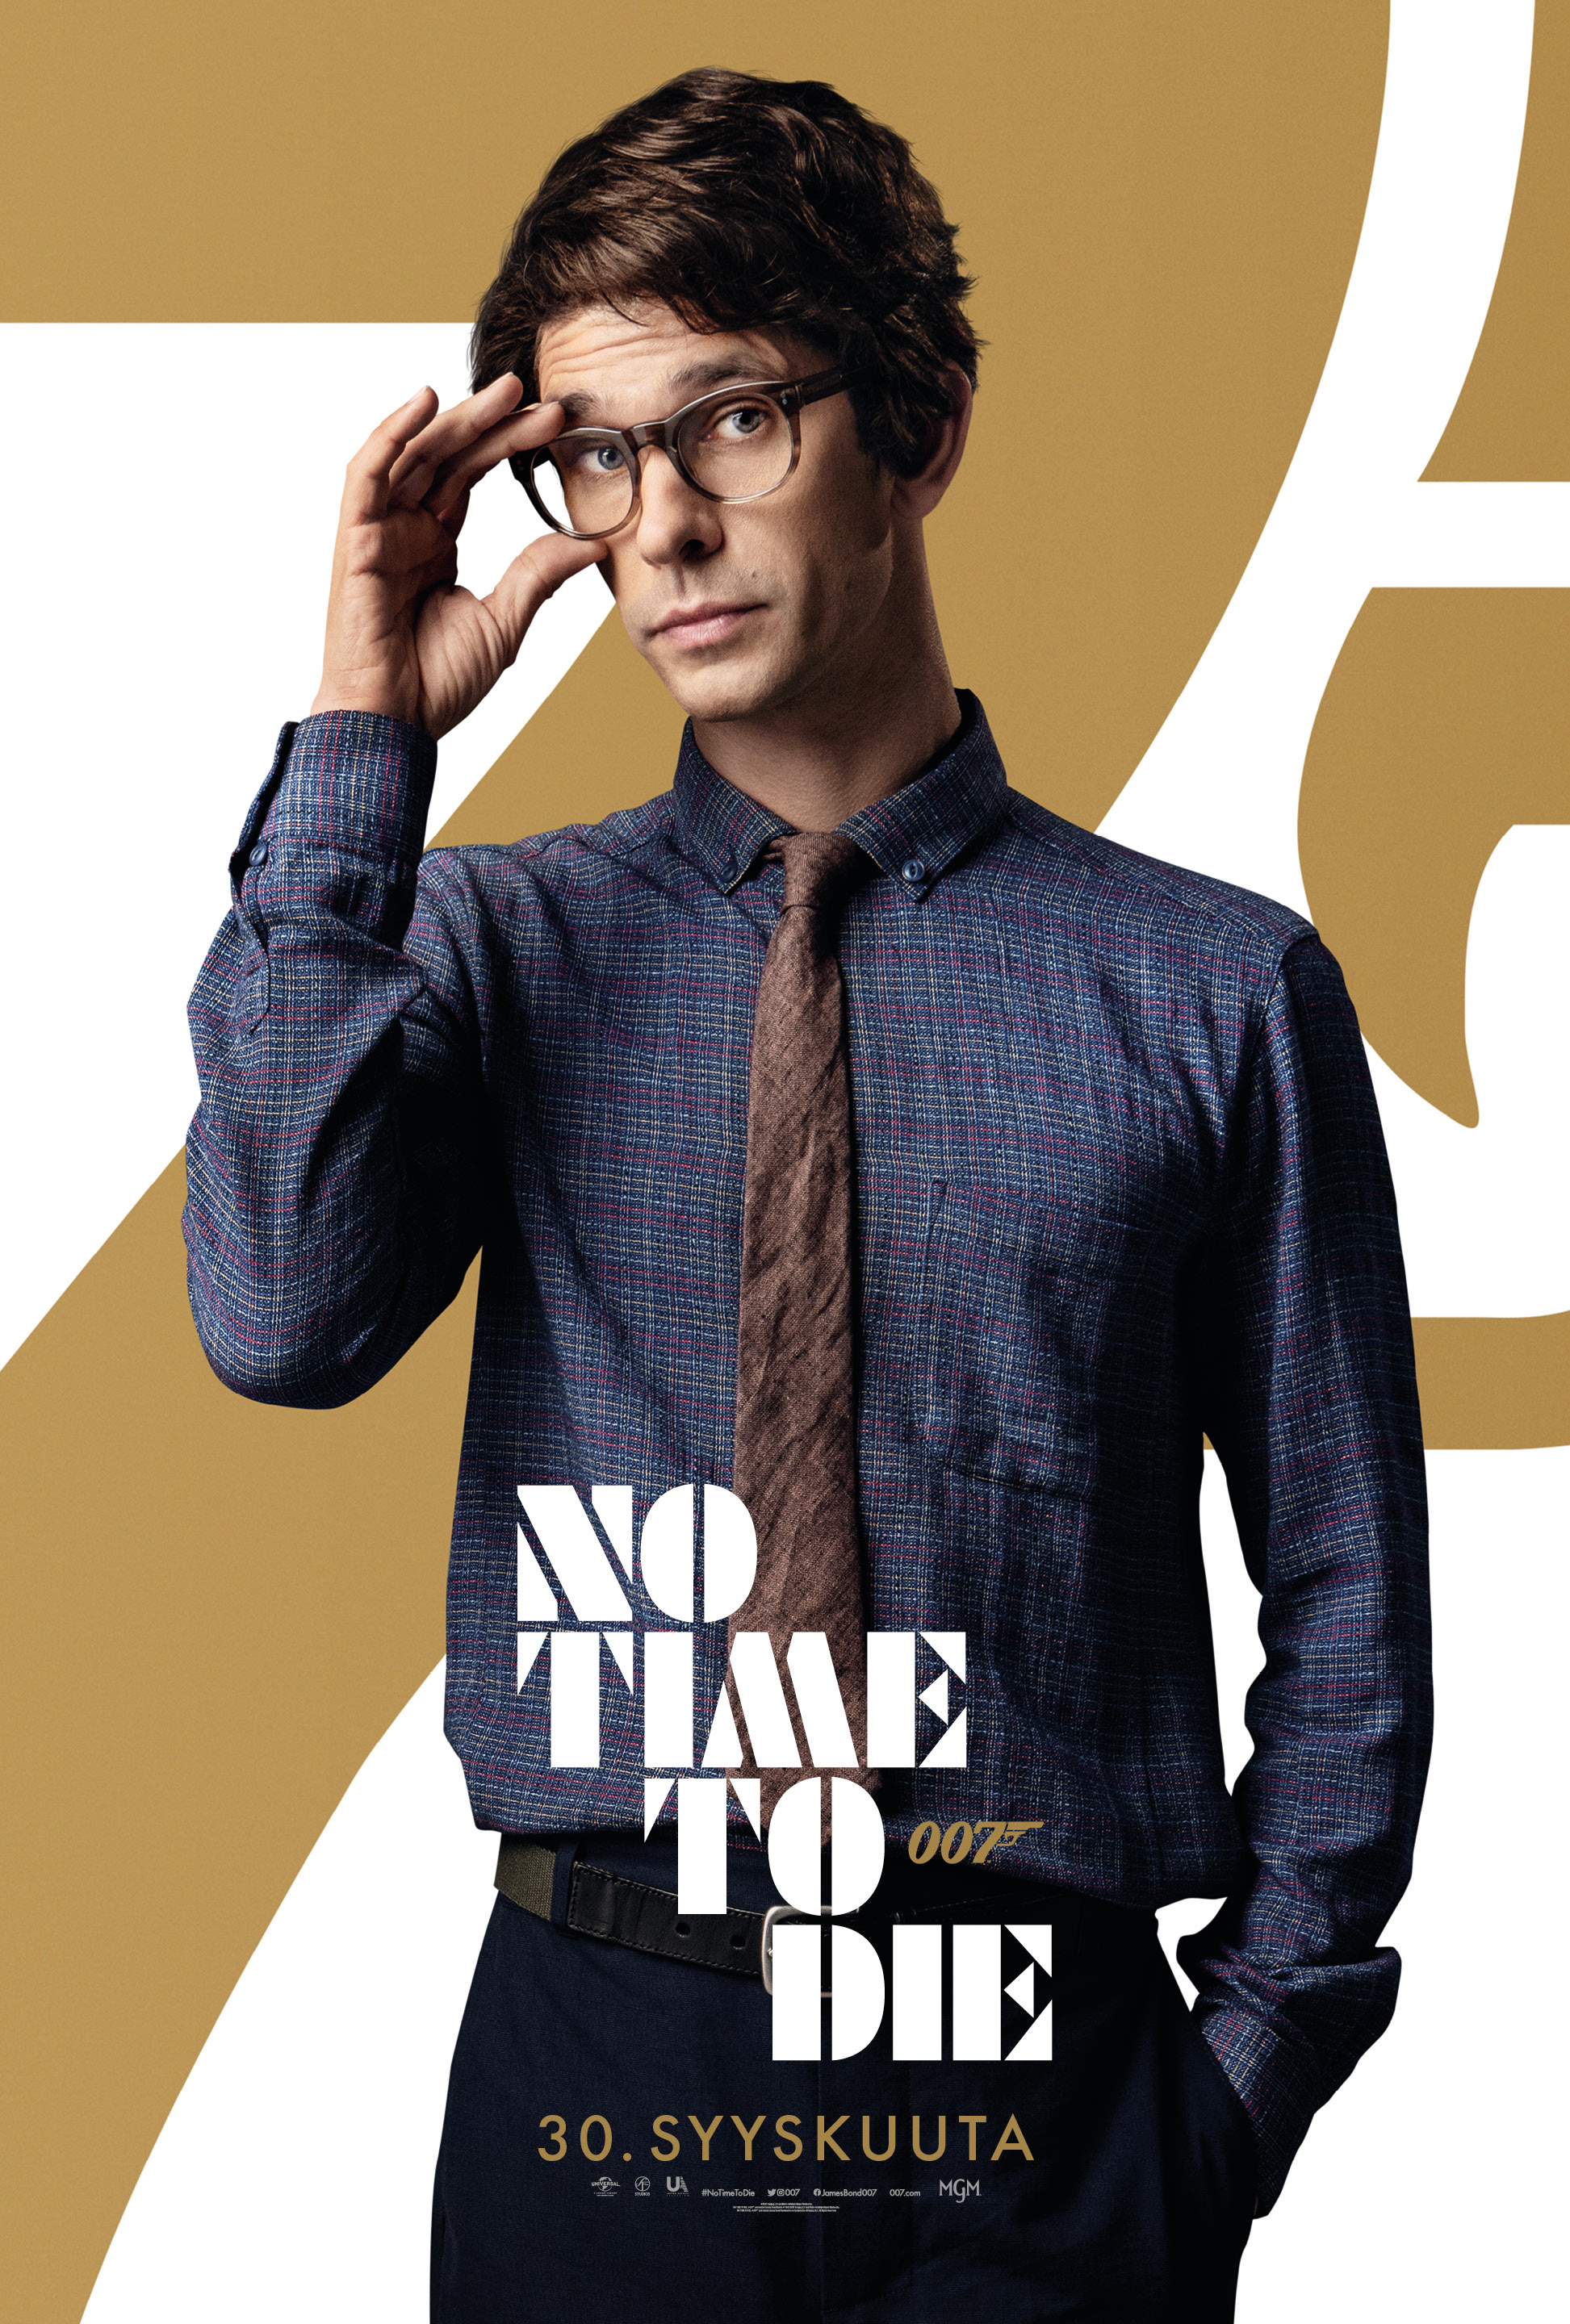 007 No Time to Die - Ben Whishaw